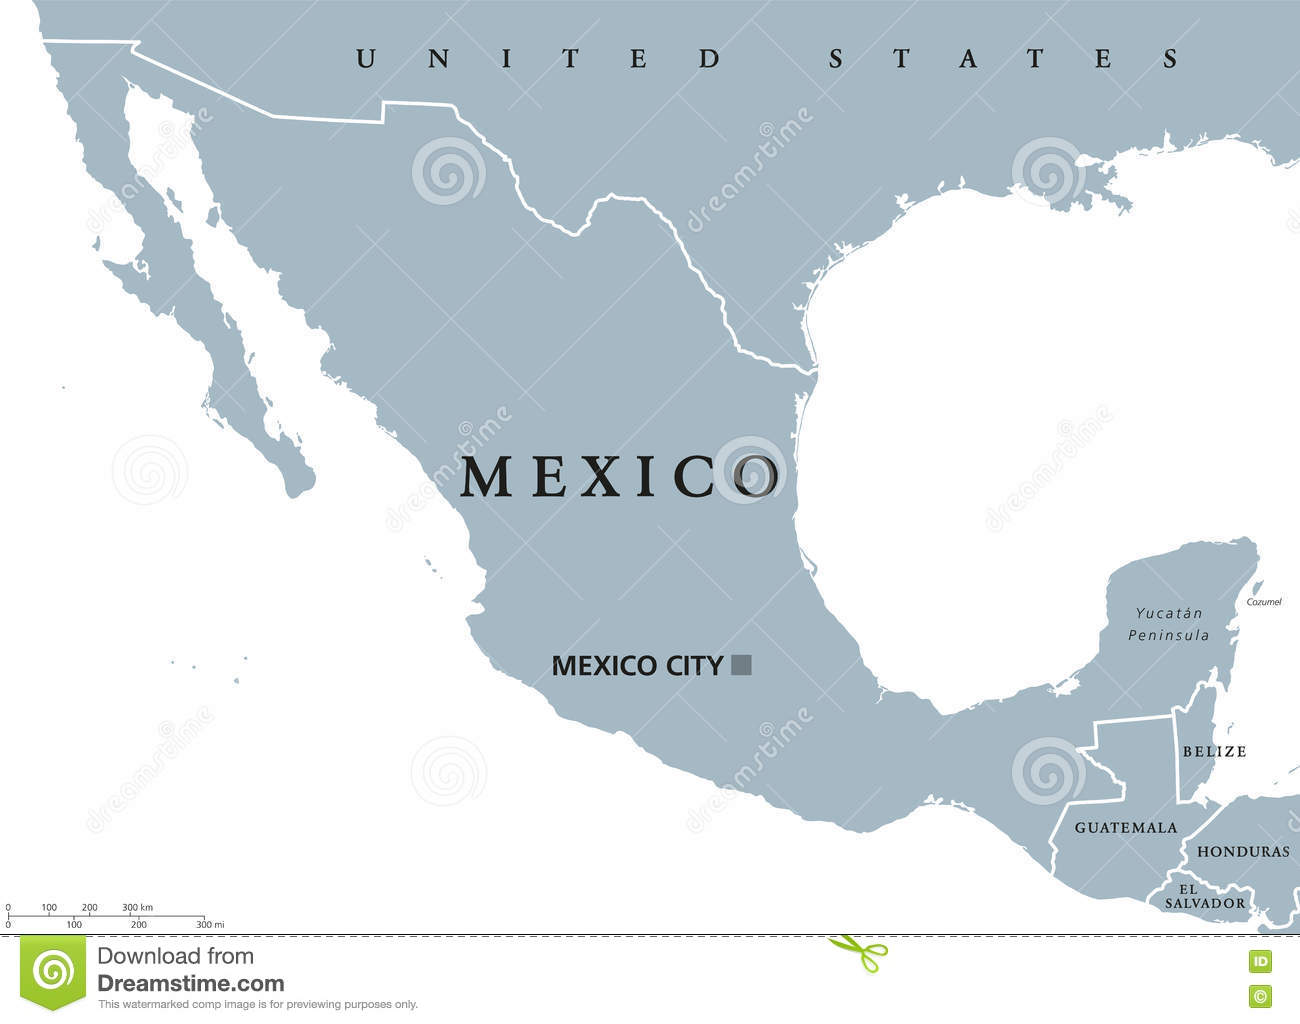 Mexico political map stock vector. Illustration of geography - 82244481